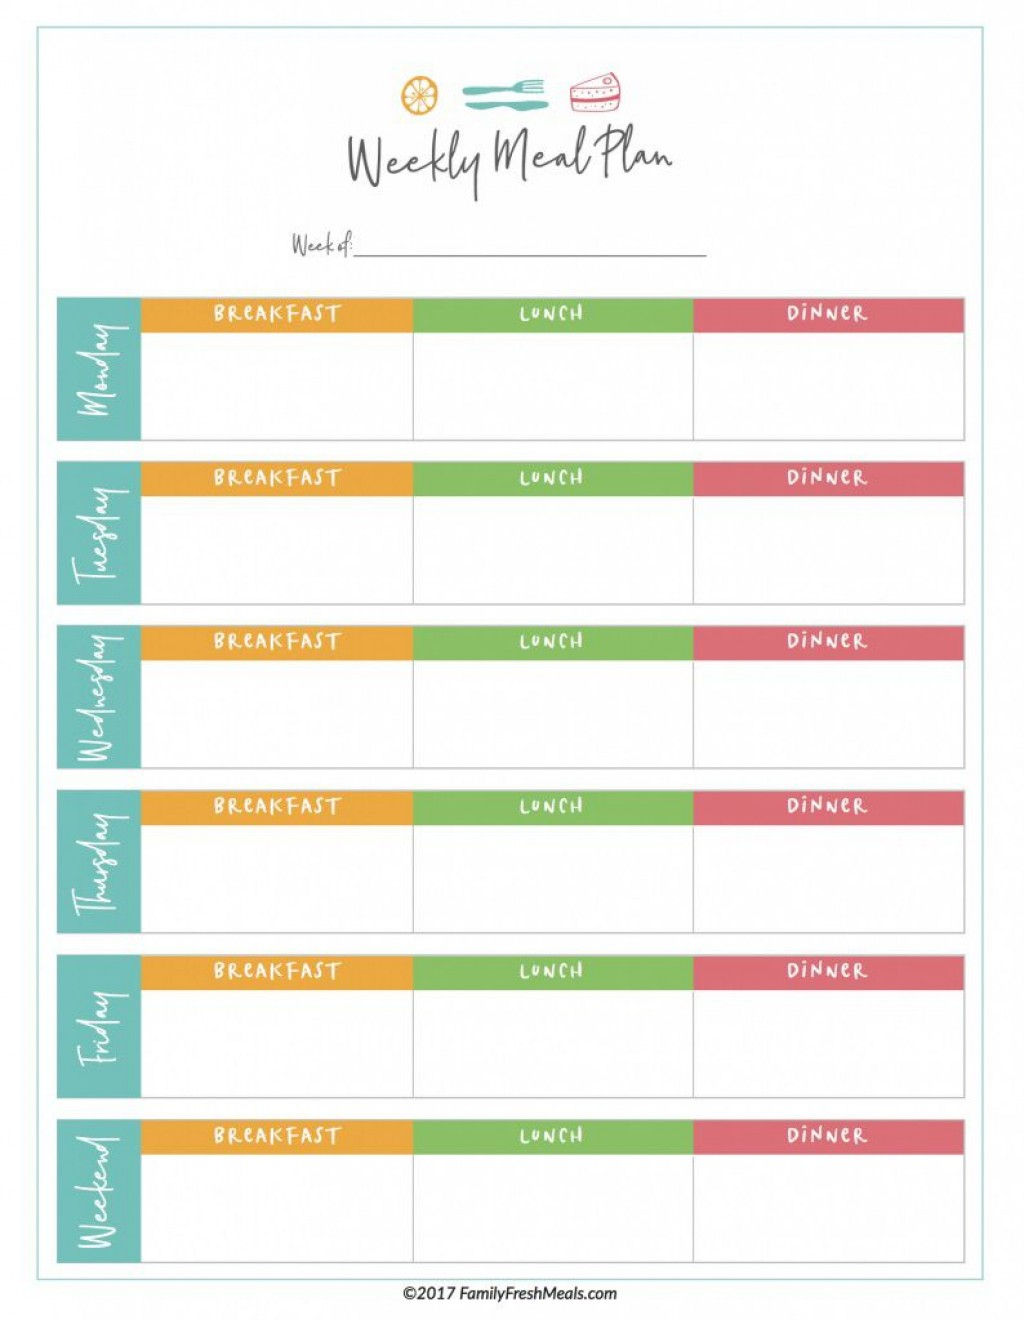 002 Stunning Free Meal Plan Template Picture  Templates Easy Keto Printable Planner For Weight LosLarge